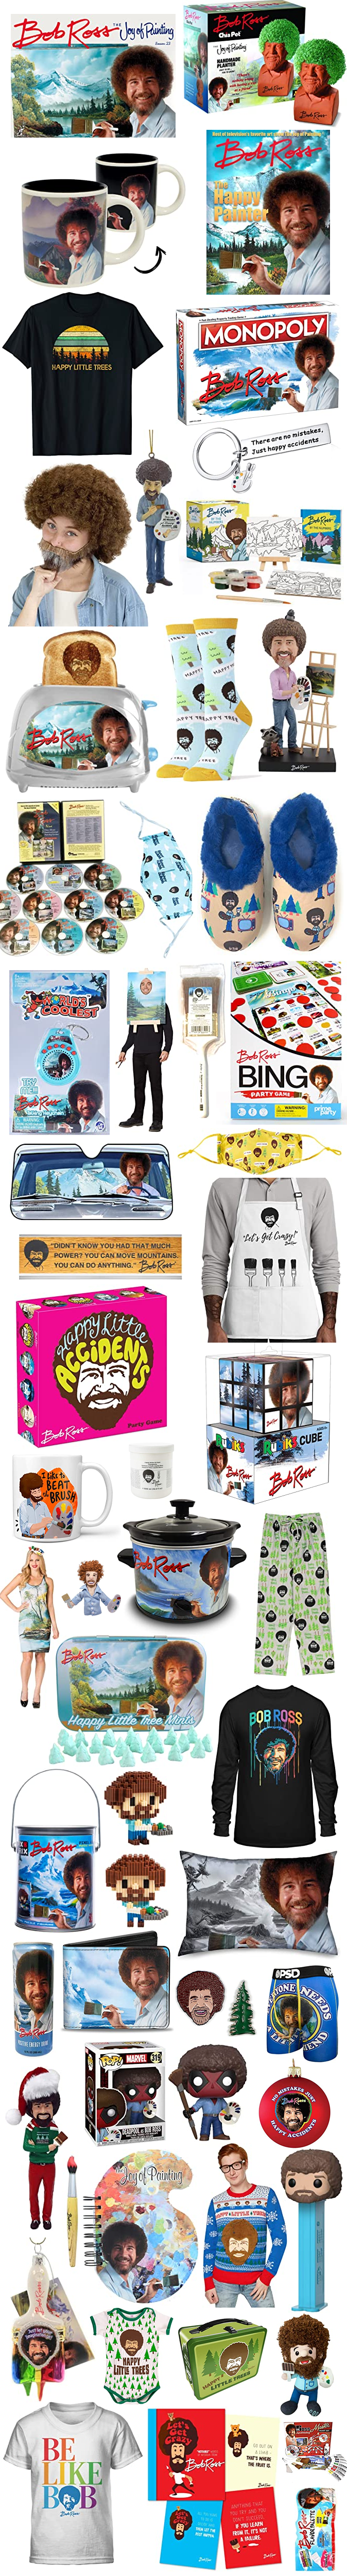 Great-Bob-Ross-Gifts